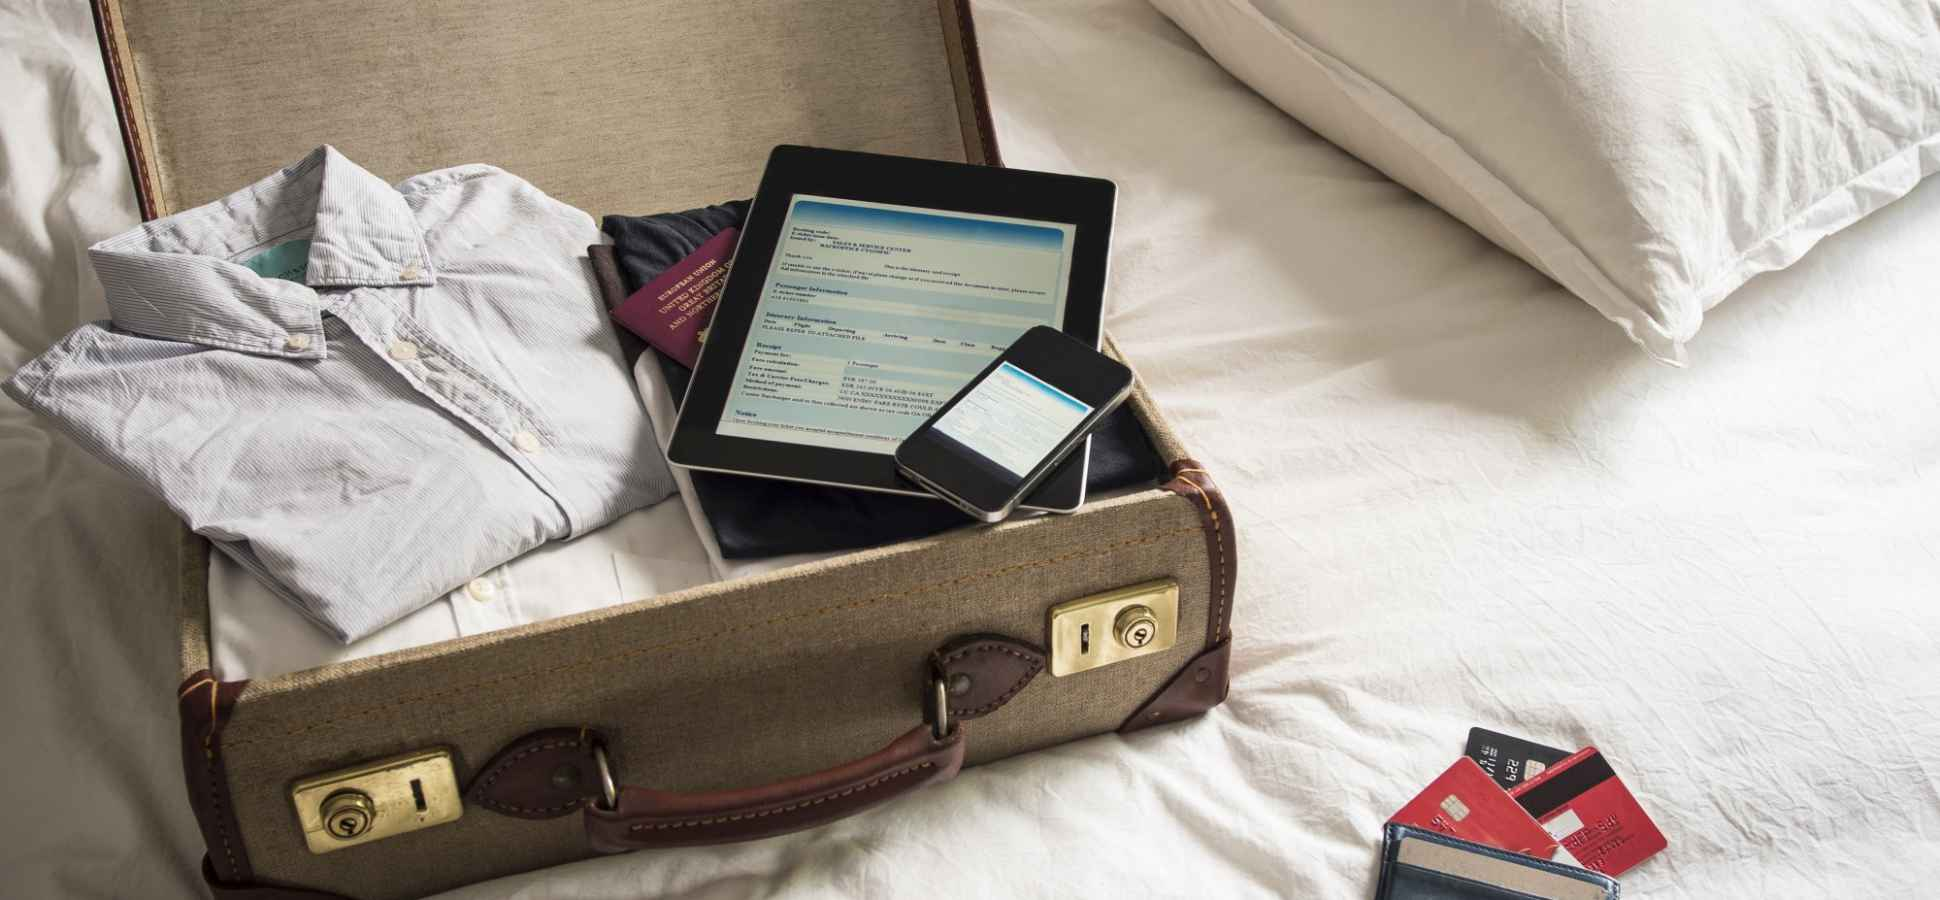 10 Of The Best Business Travel Tips From The Experts